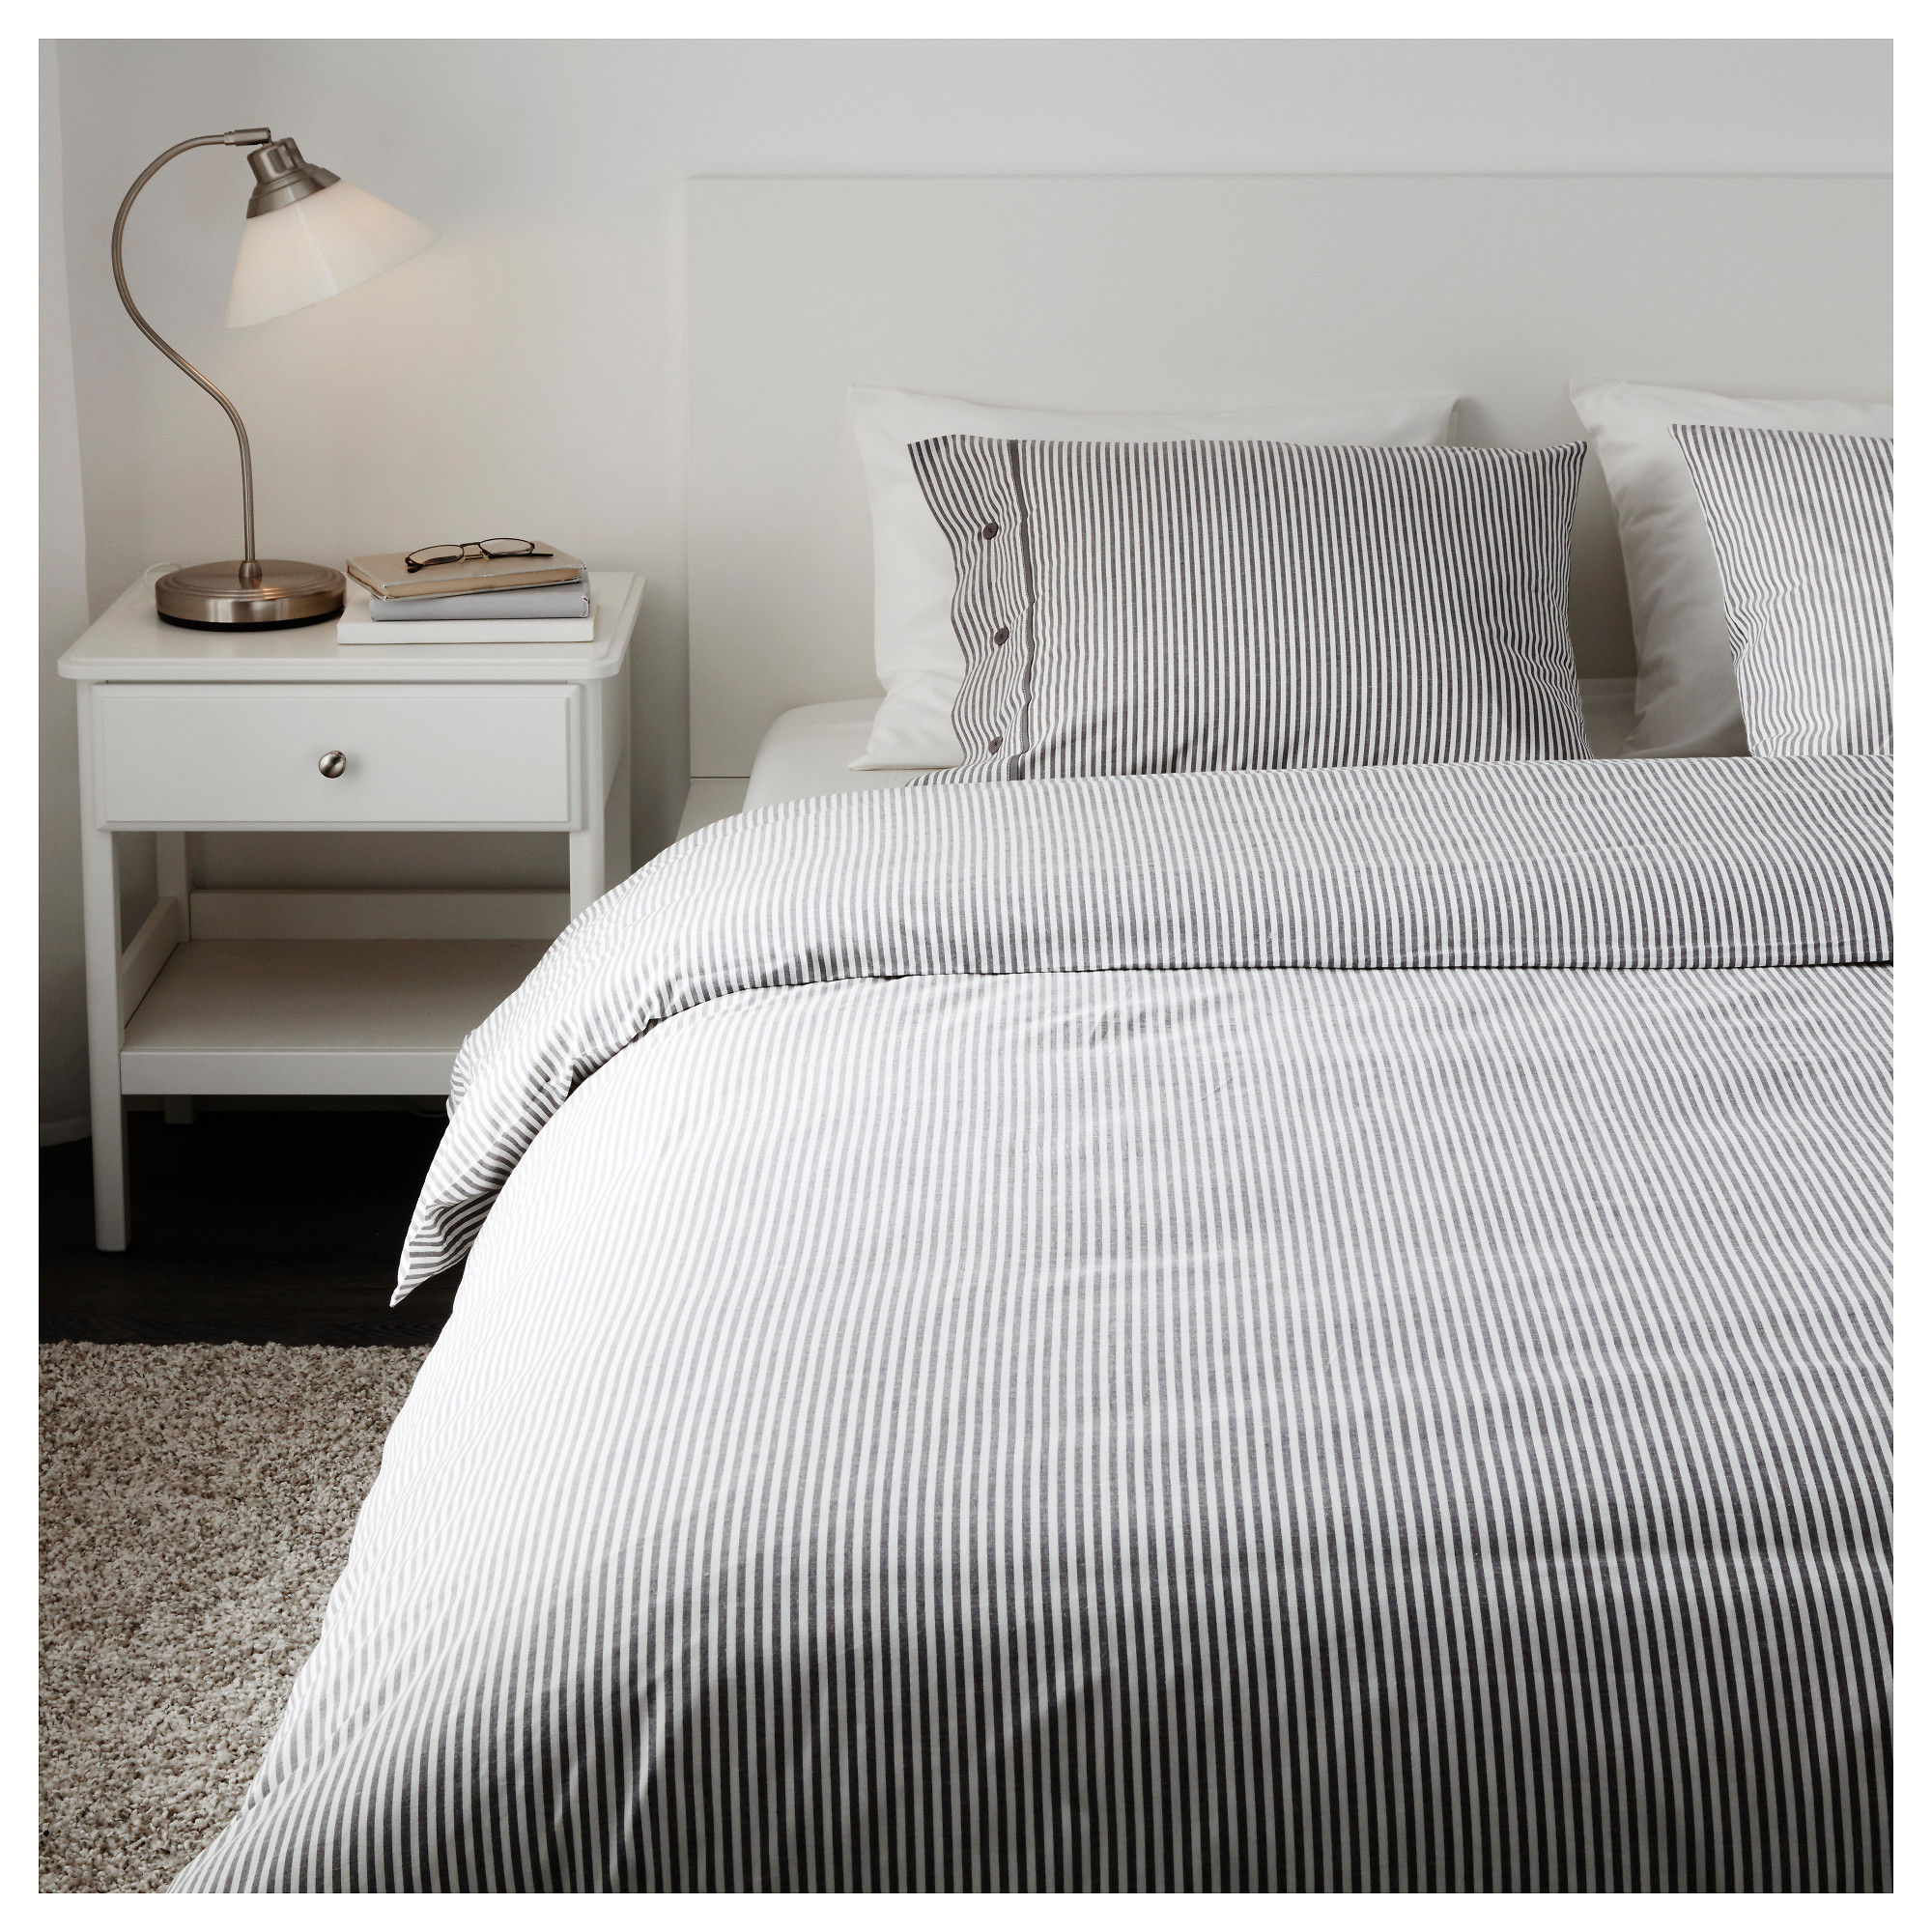 luxury using affordable bloomingdales bedding hotel review and a best sheets the kellypaige of make white linens expensive from how my to gray bed